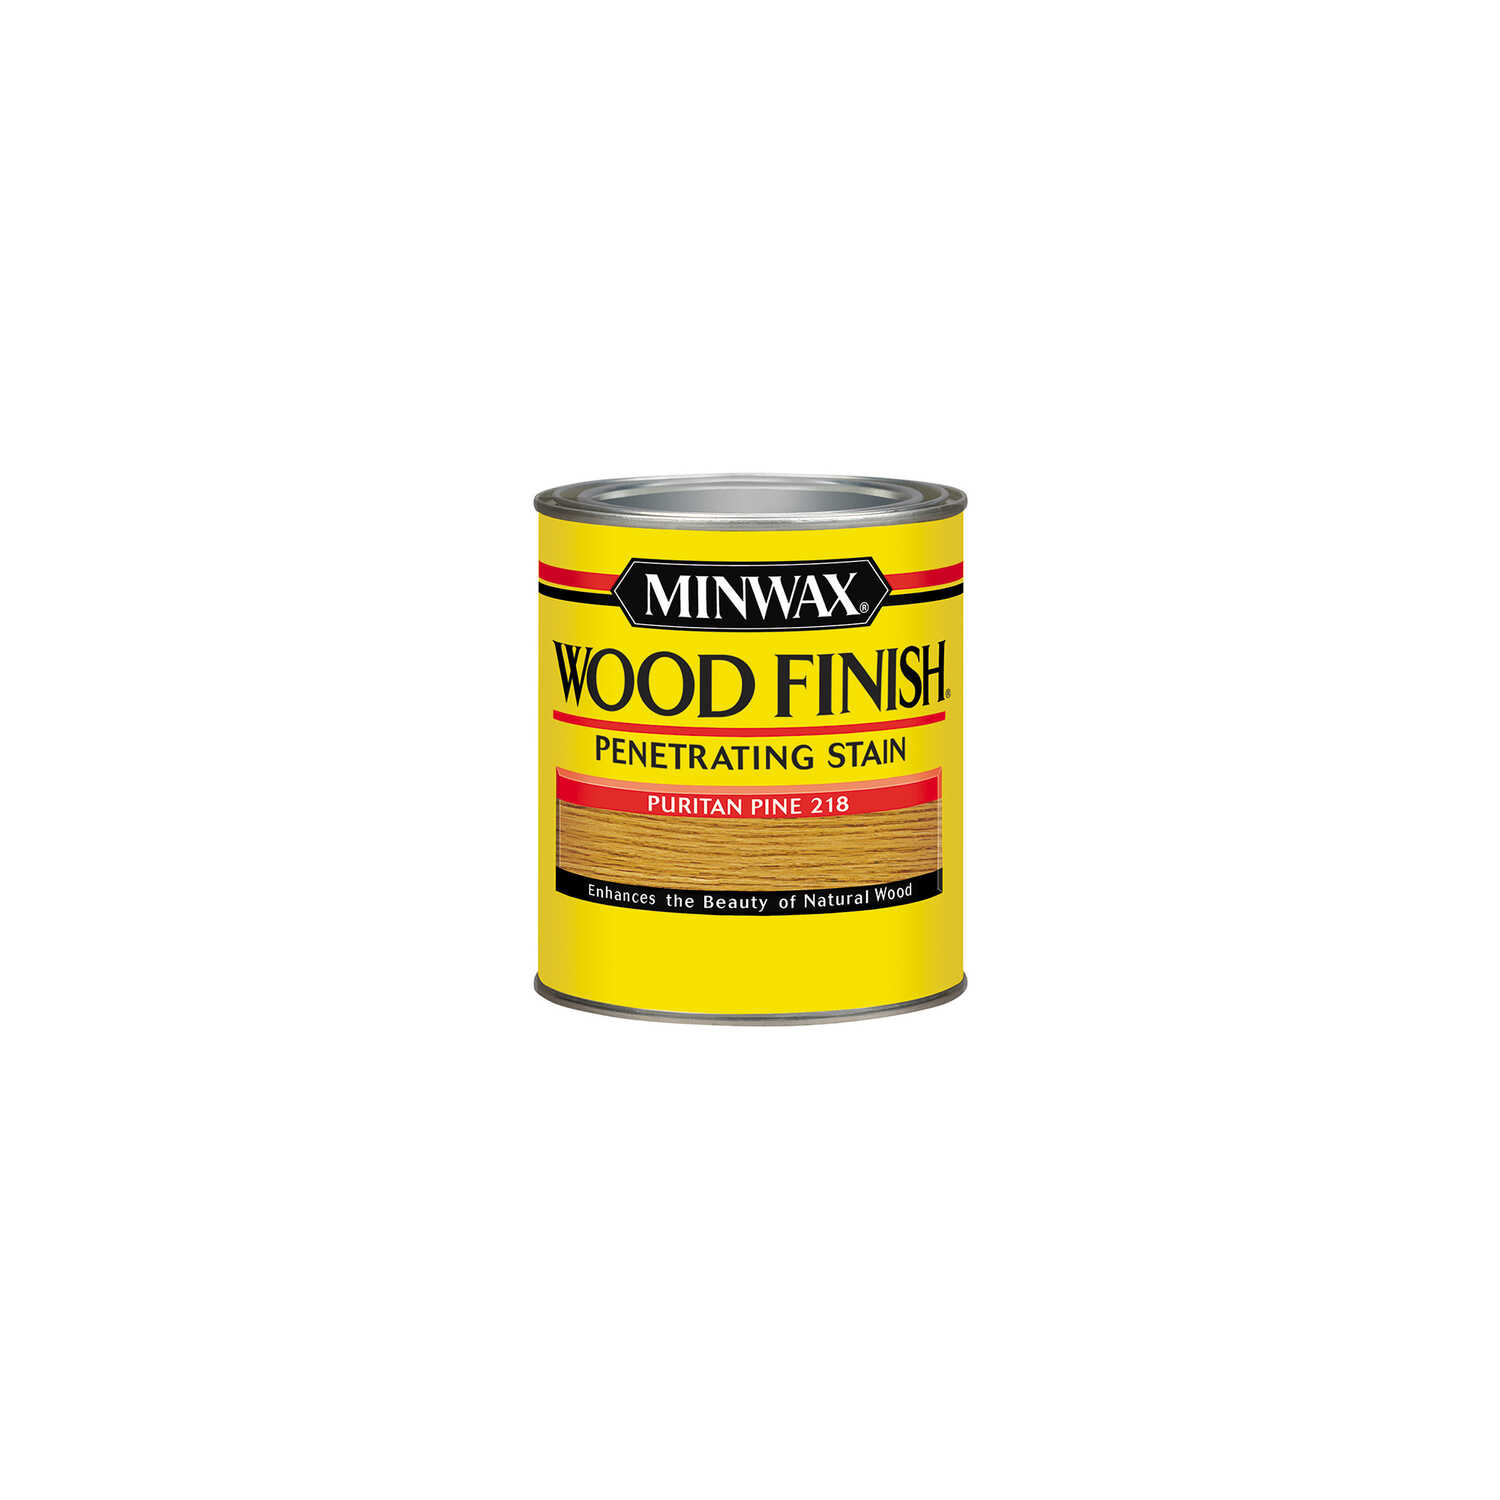 Minwax  Wood Finish  Semi-Transparent  Puritan Pine  Oil-Based  Wood Stain  0.5 pt.